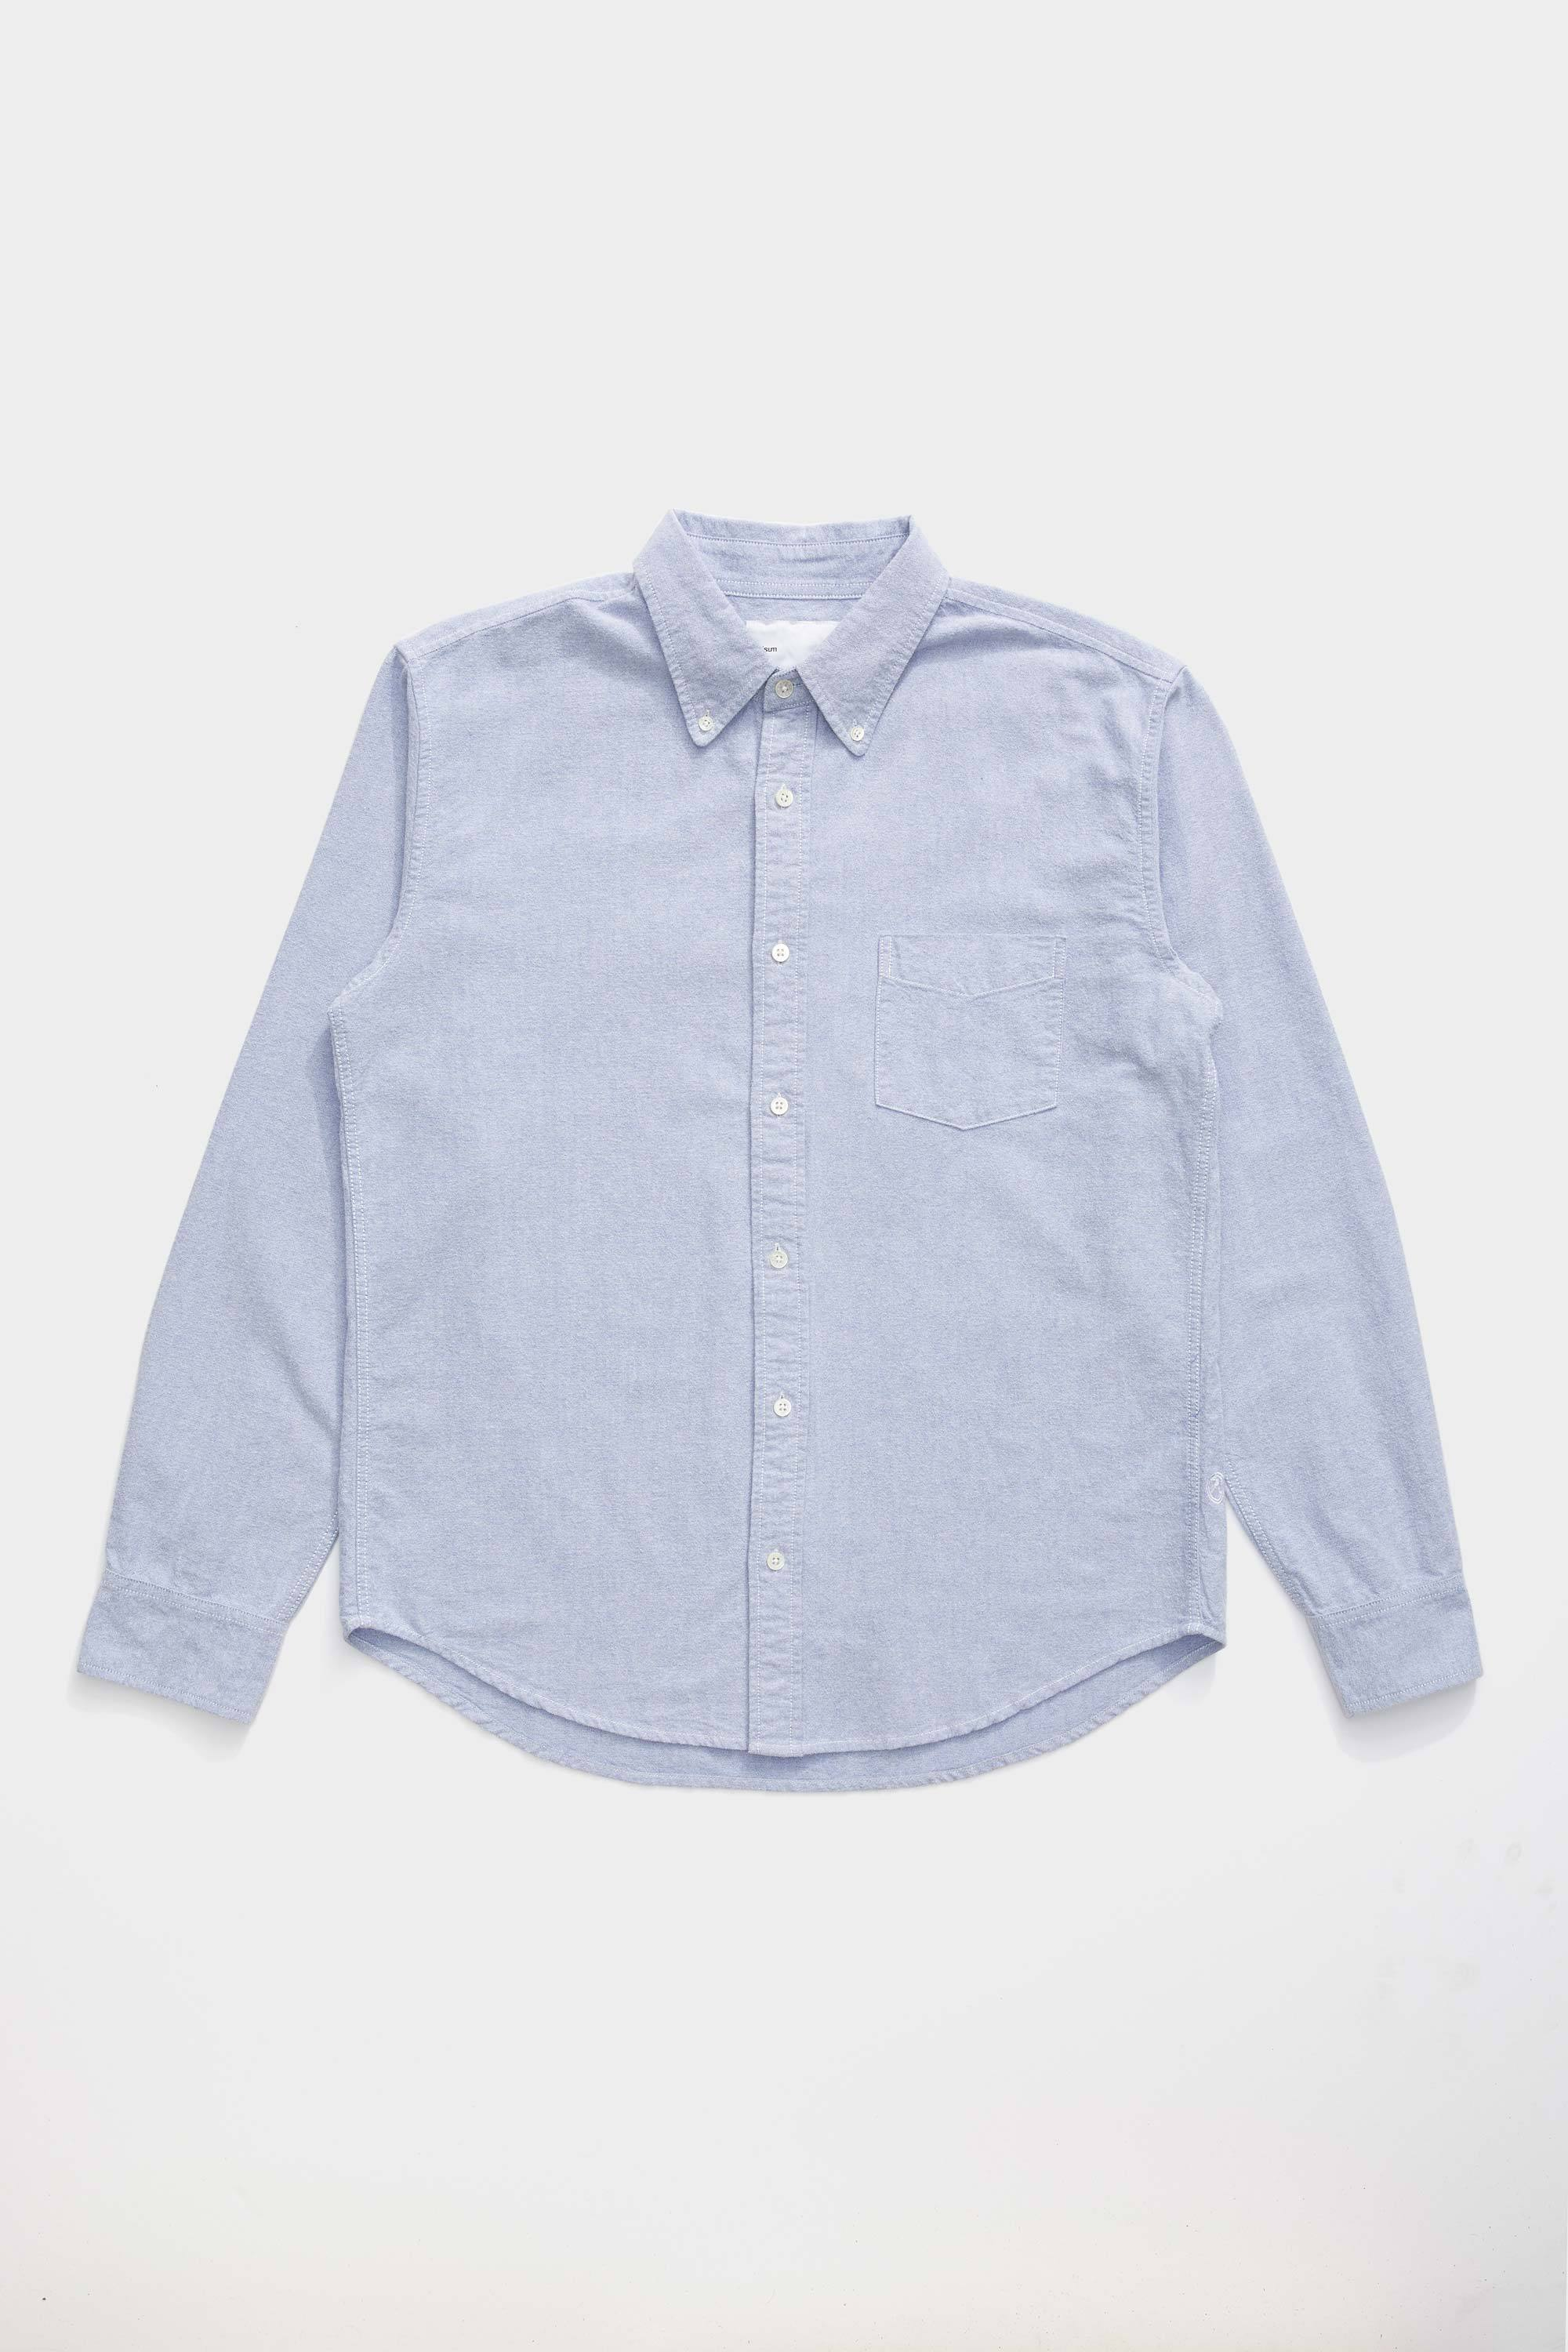 Oxford Buttondown Shirt - Navy